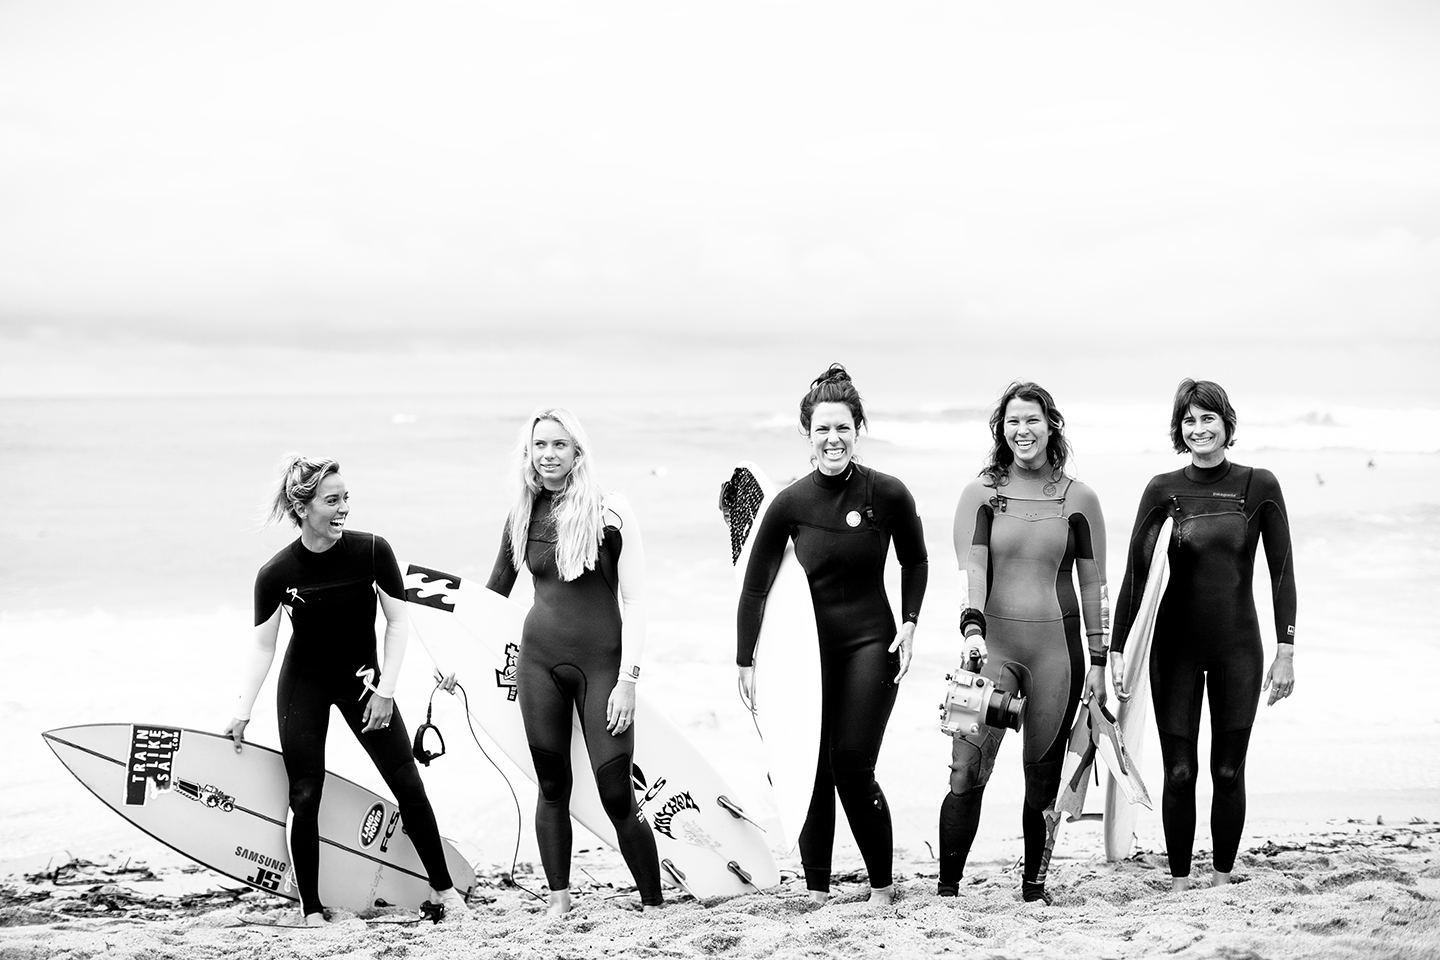 Black and white photo of female surfers